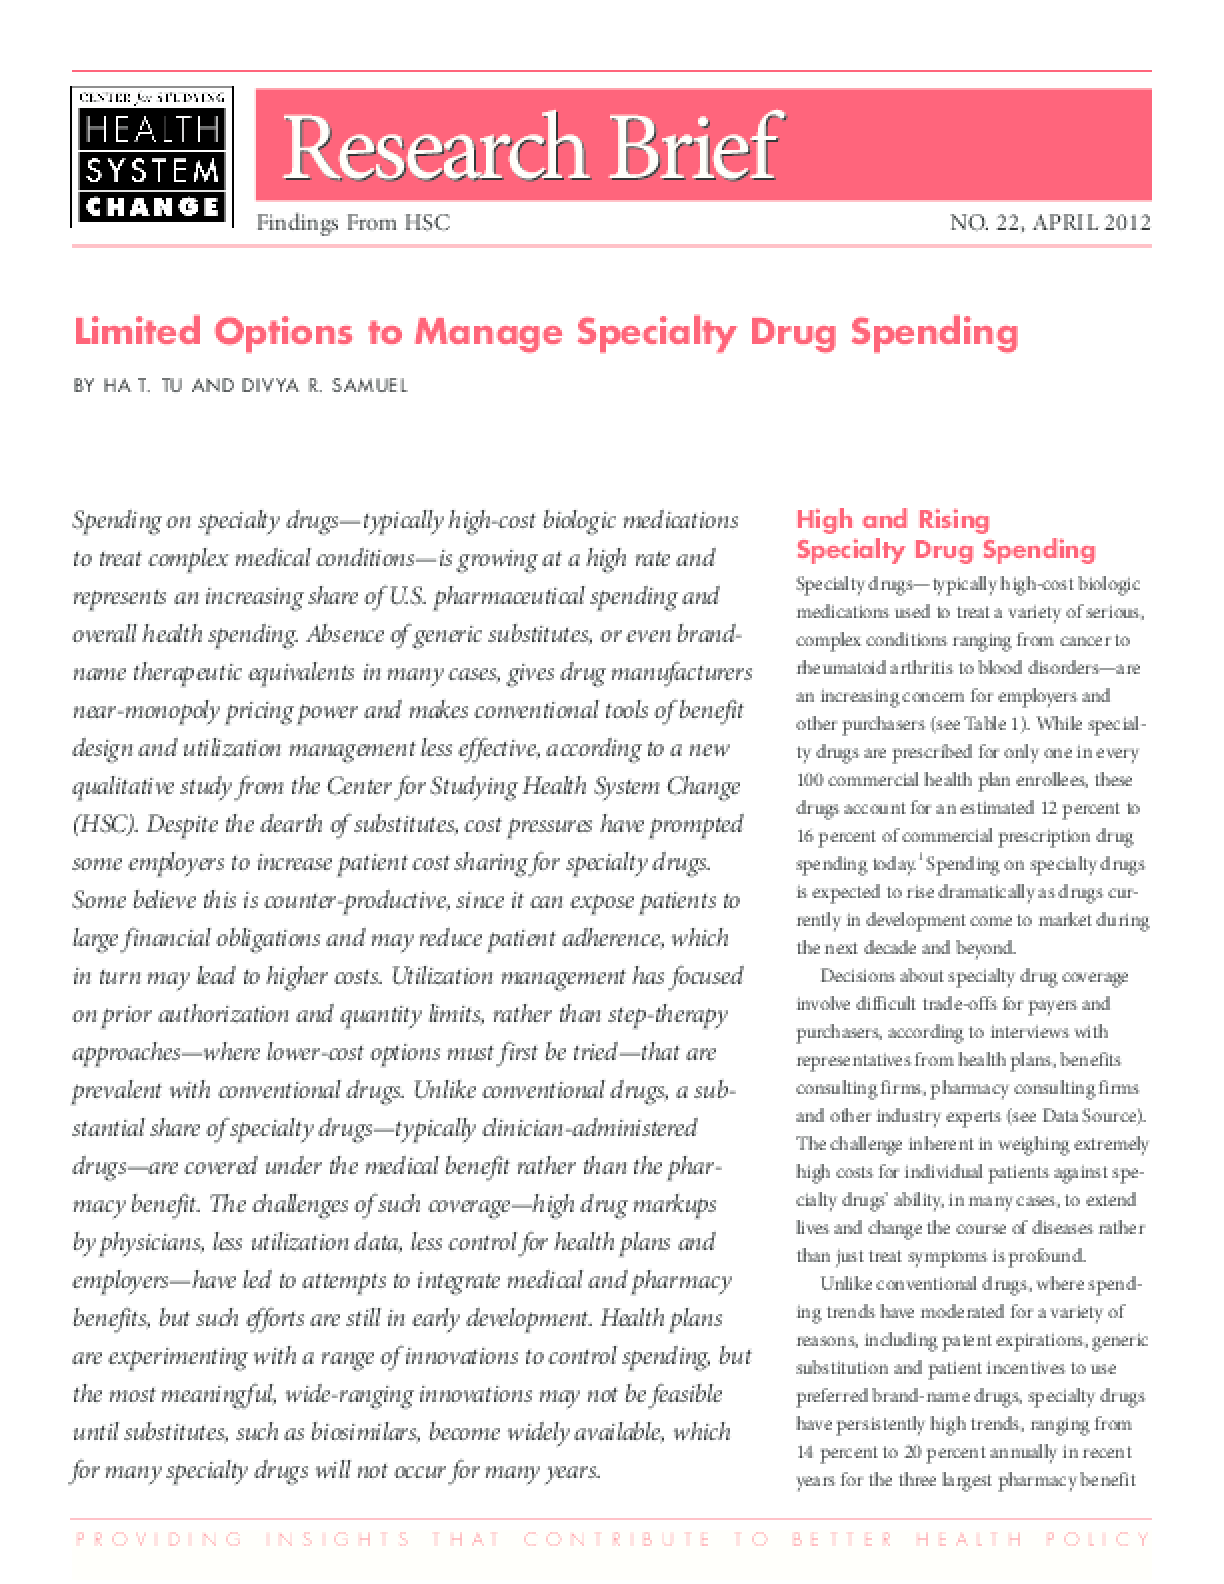 Limited Options to Manage Specialty Drug Spending